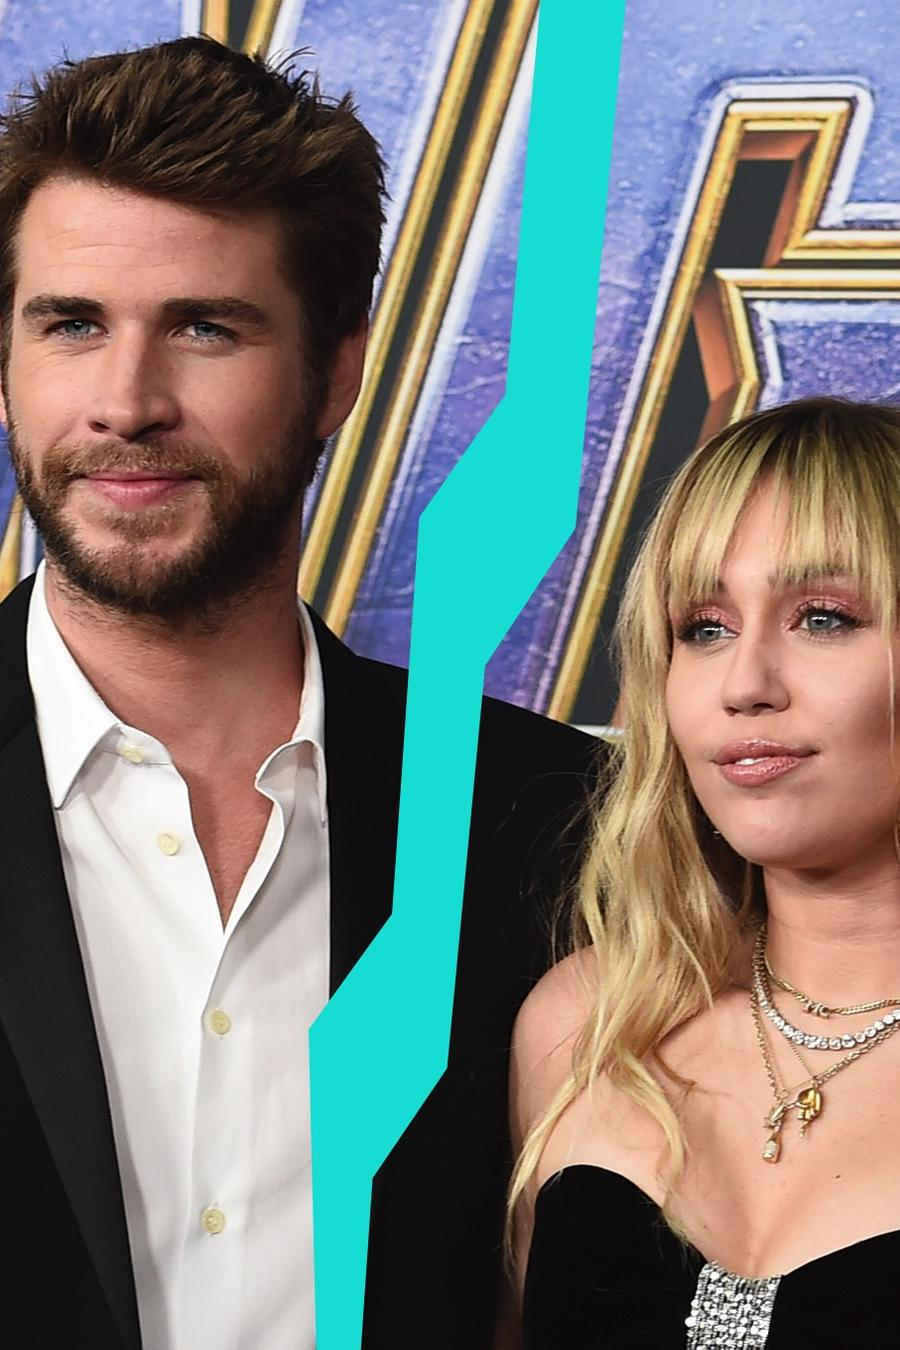 Miley Cyrus and Liam Hemsworth Are Officially Divorced